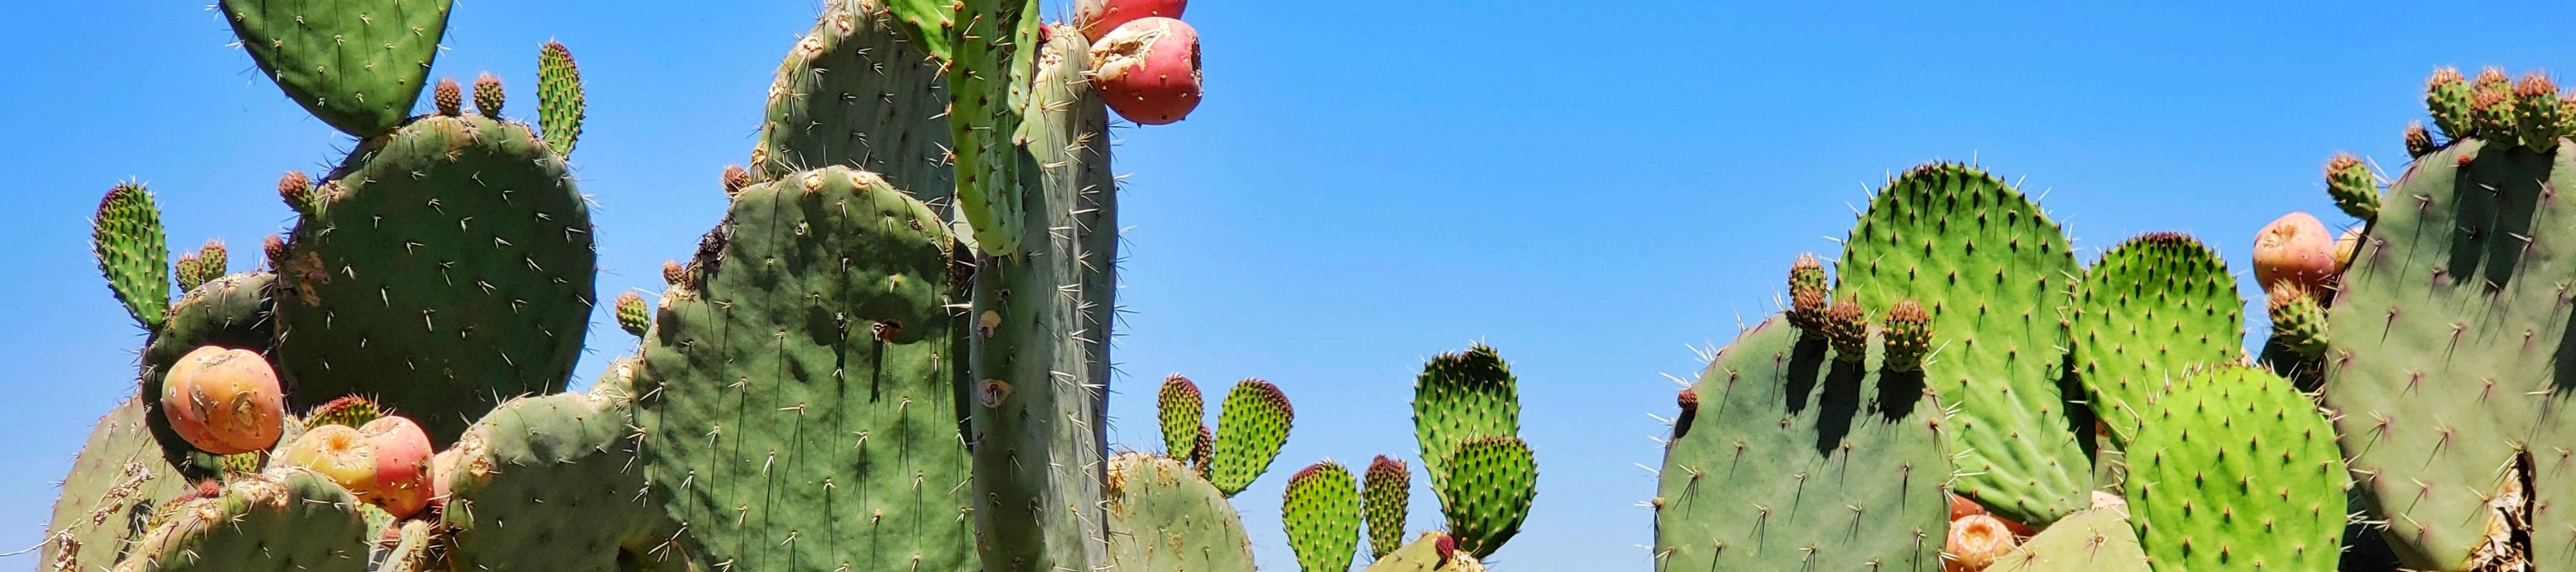 Close up of prickly cacti under a blue sky